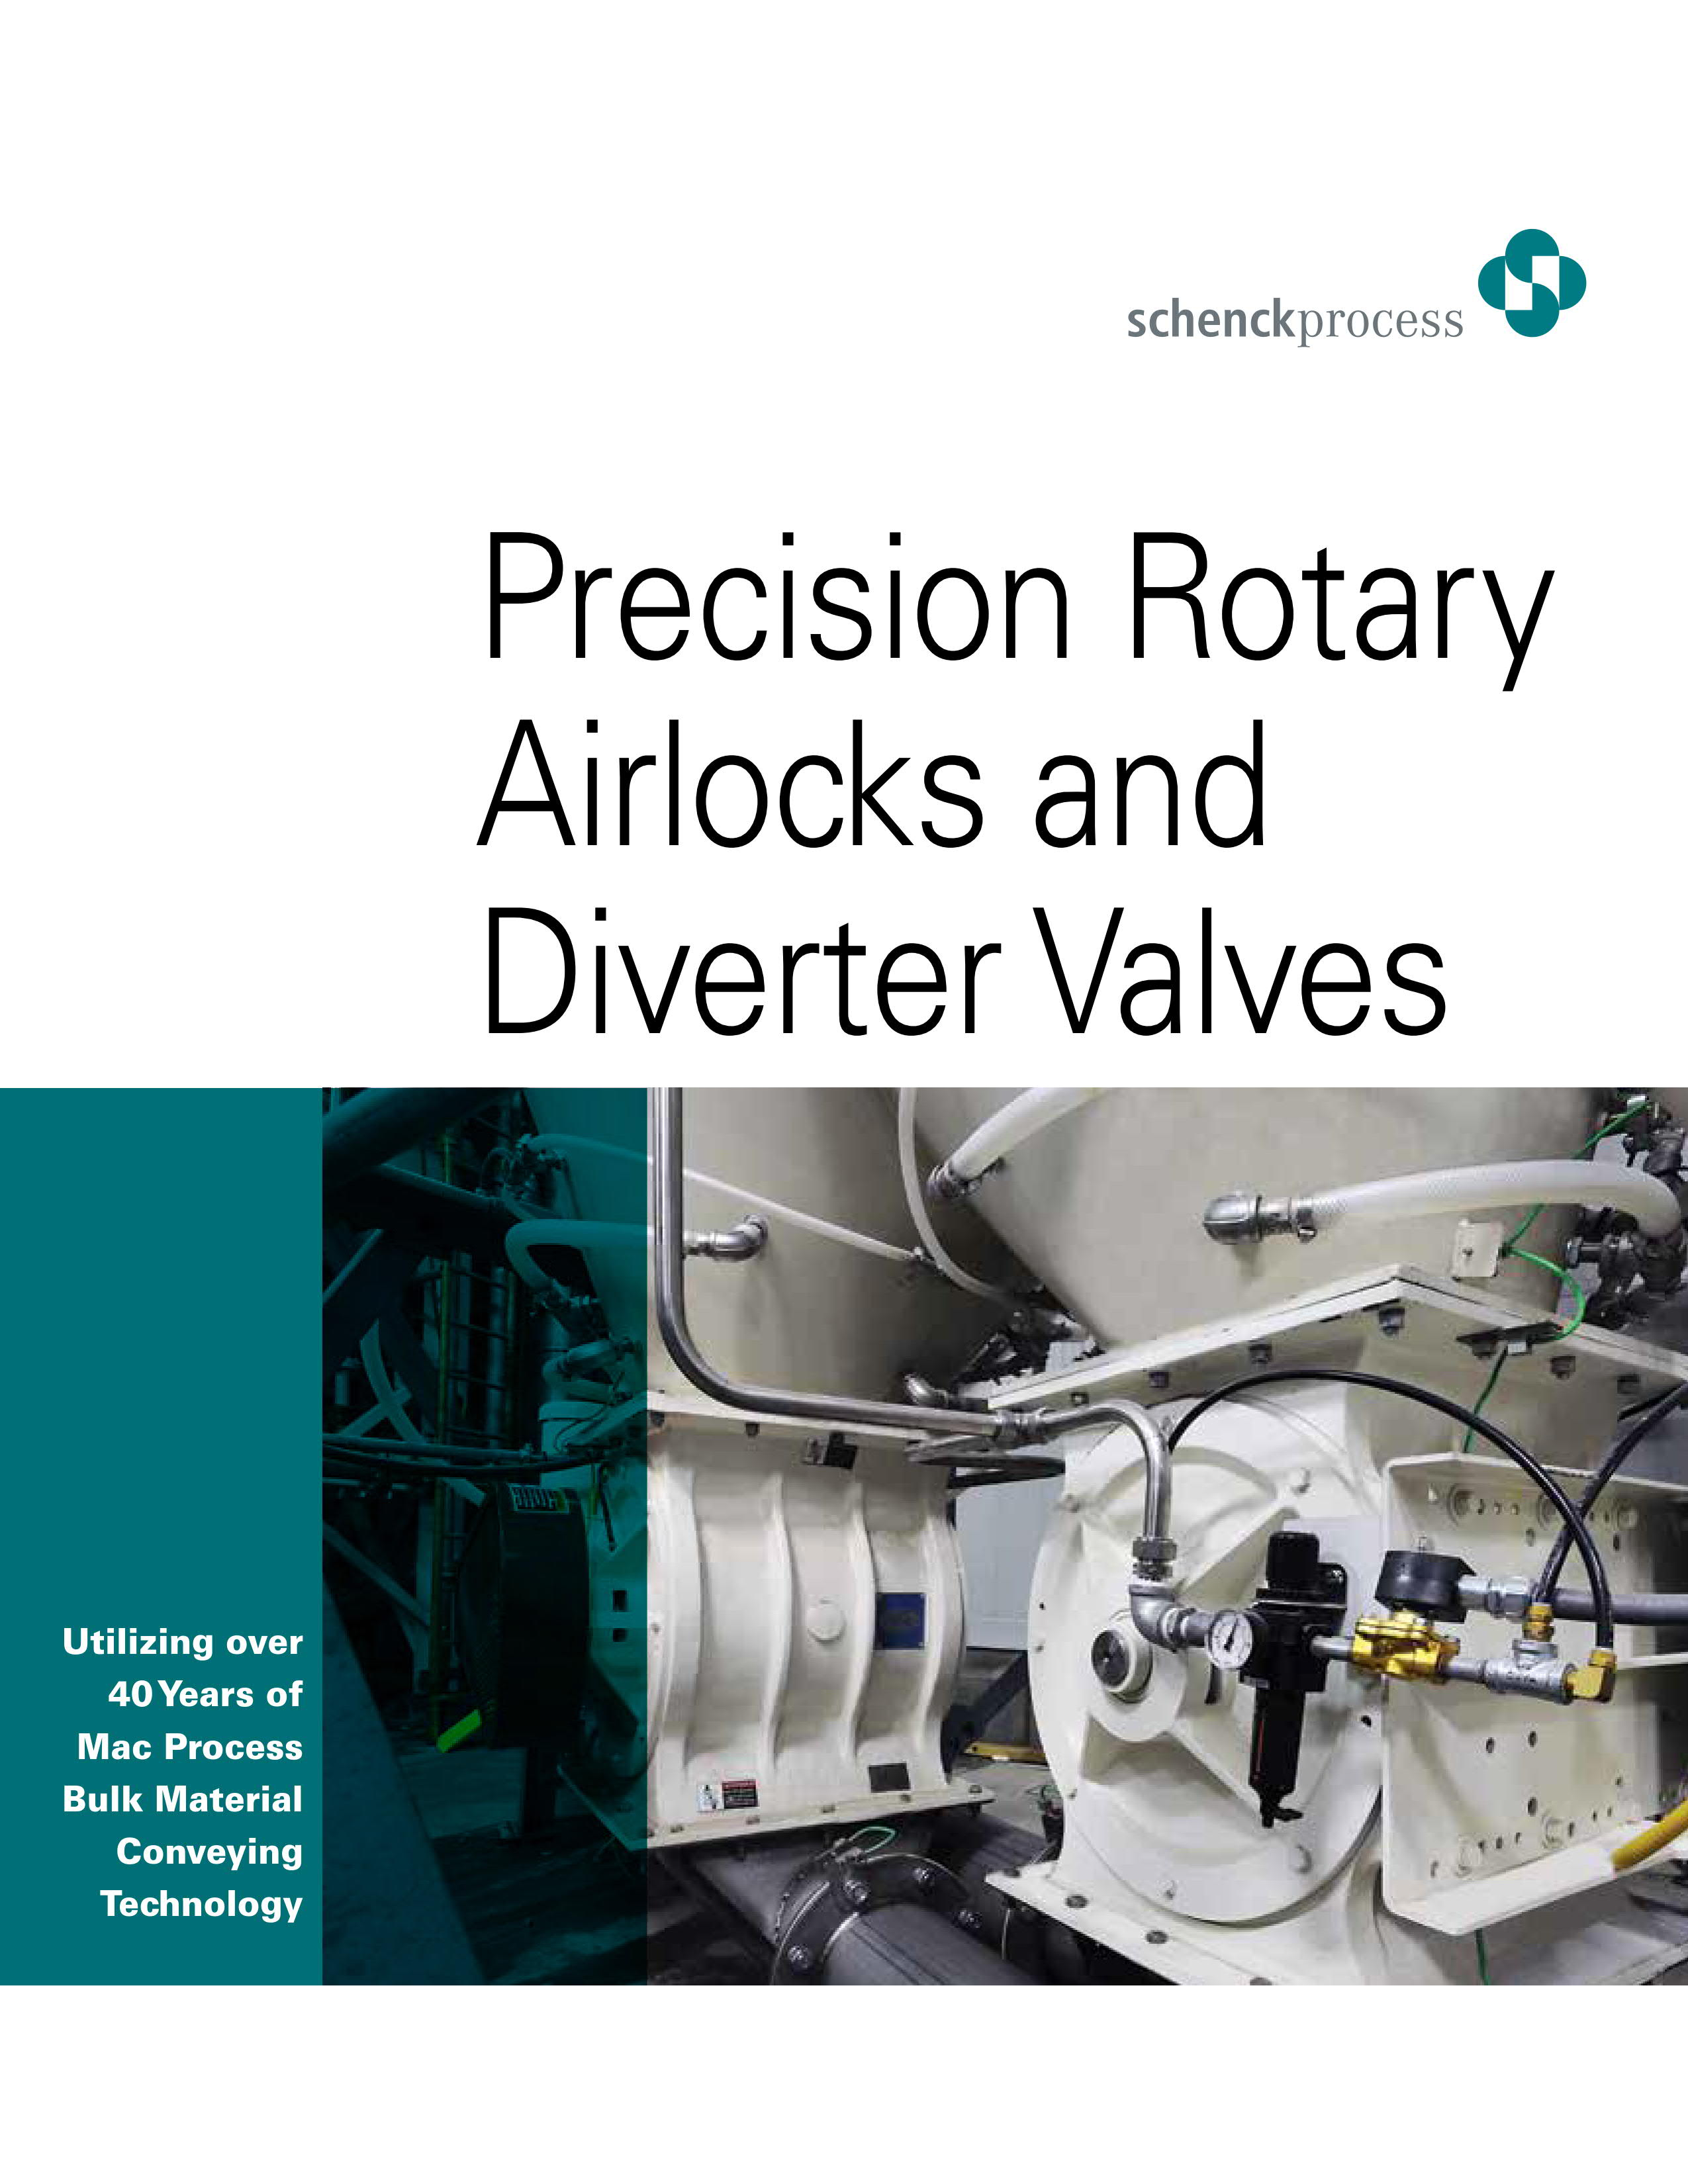 Precision Rotary Airlocks and Diverter Valves